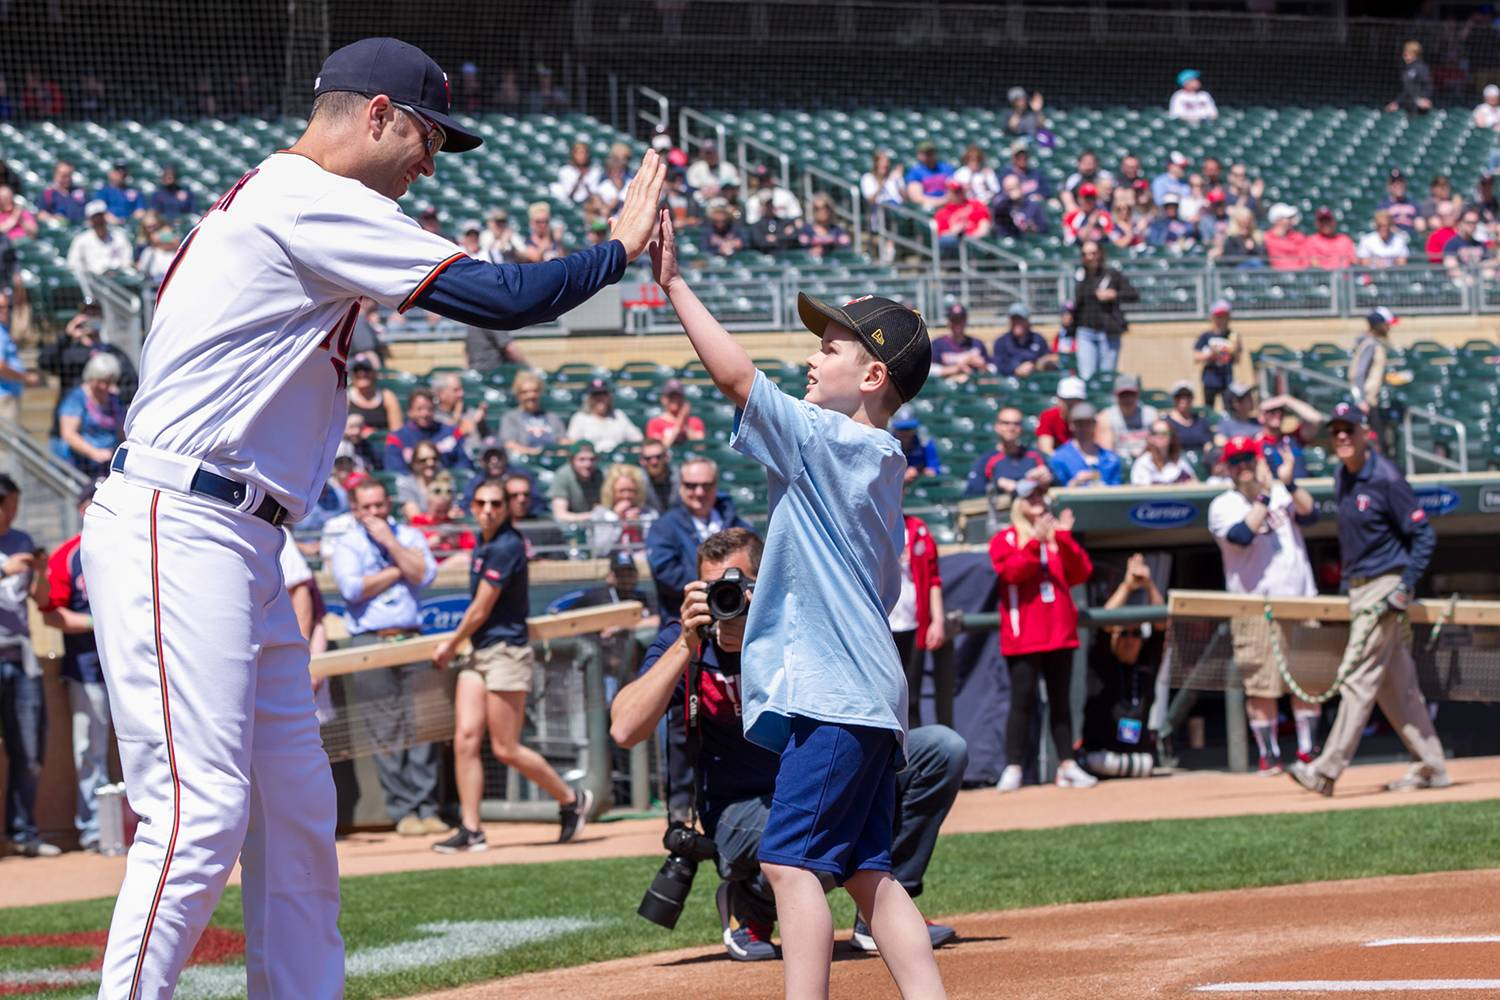 Gillette patient Wyatt gives Joe Mauer a high five